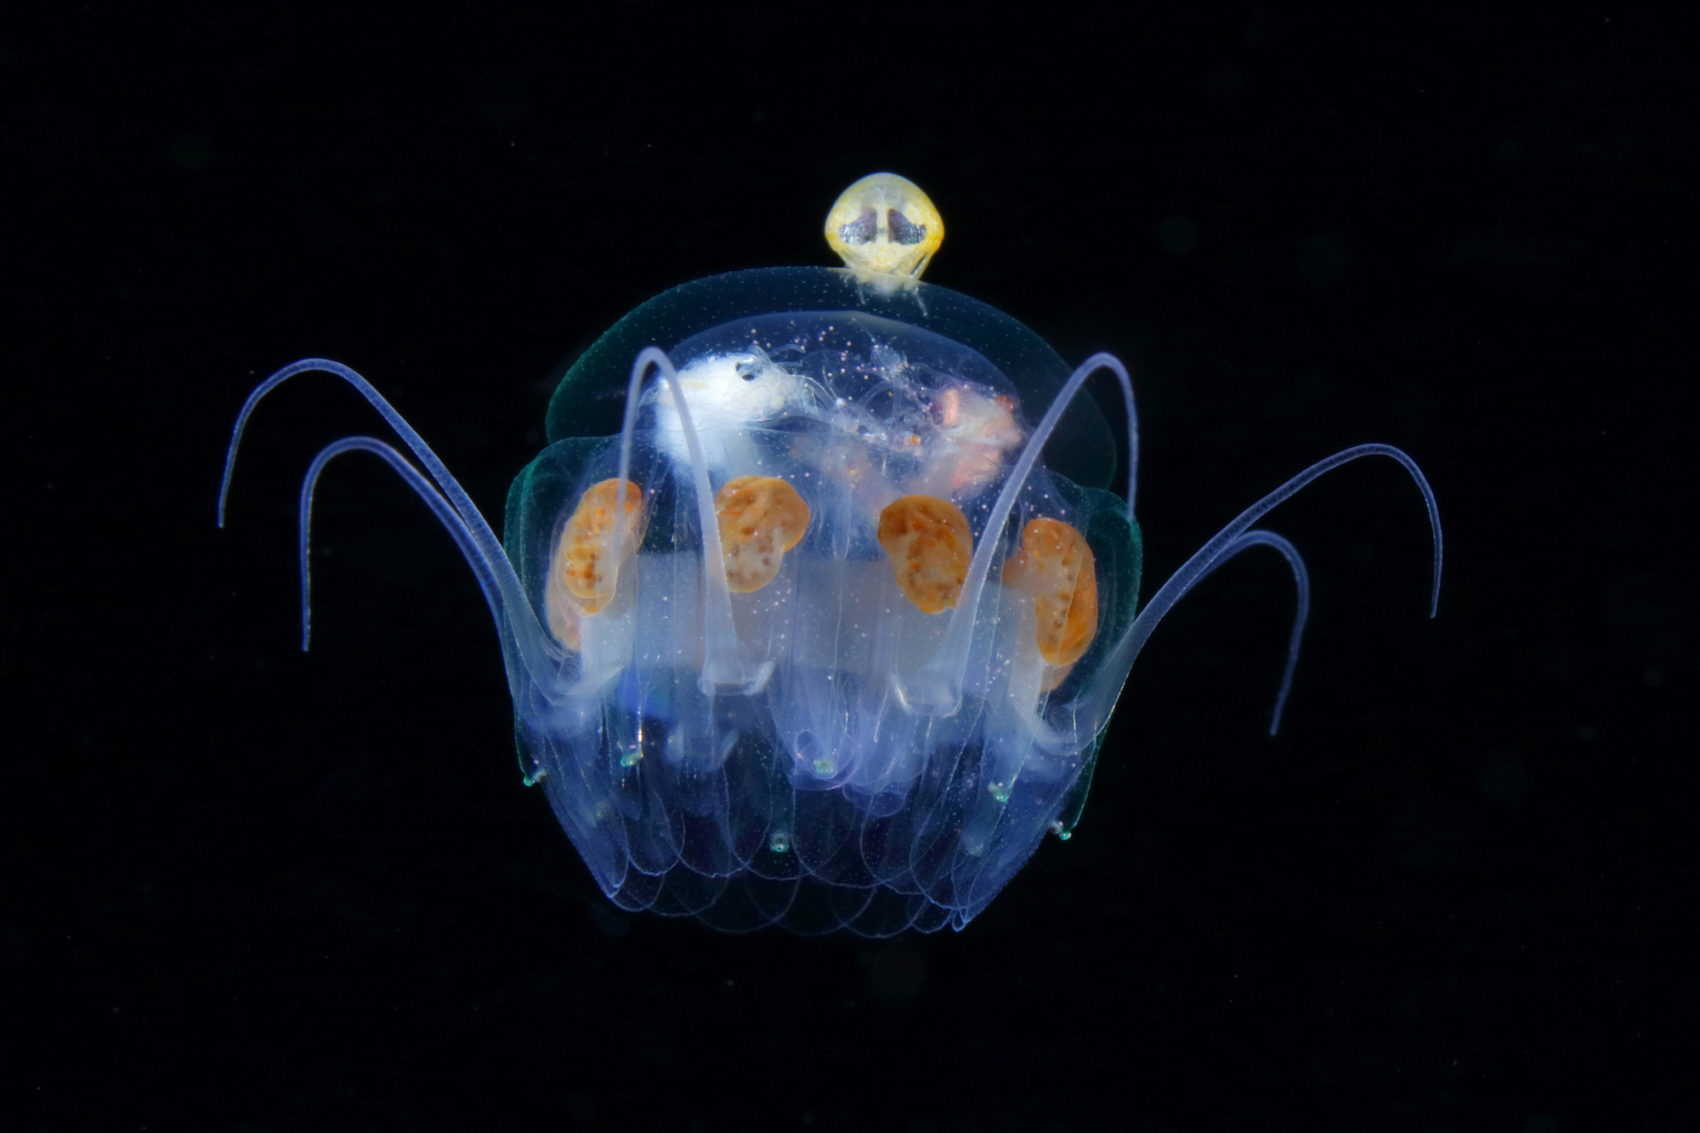 Jewels in the Night Sea RyoMinemizu 5 Luminous Plankton Captured in the Dark Waters of the Osezaki Sea